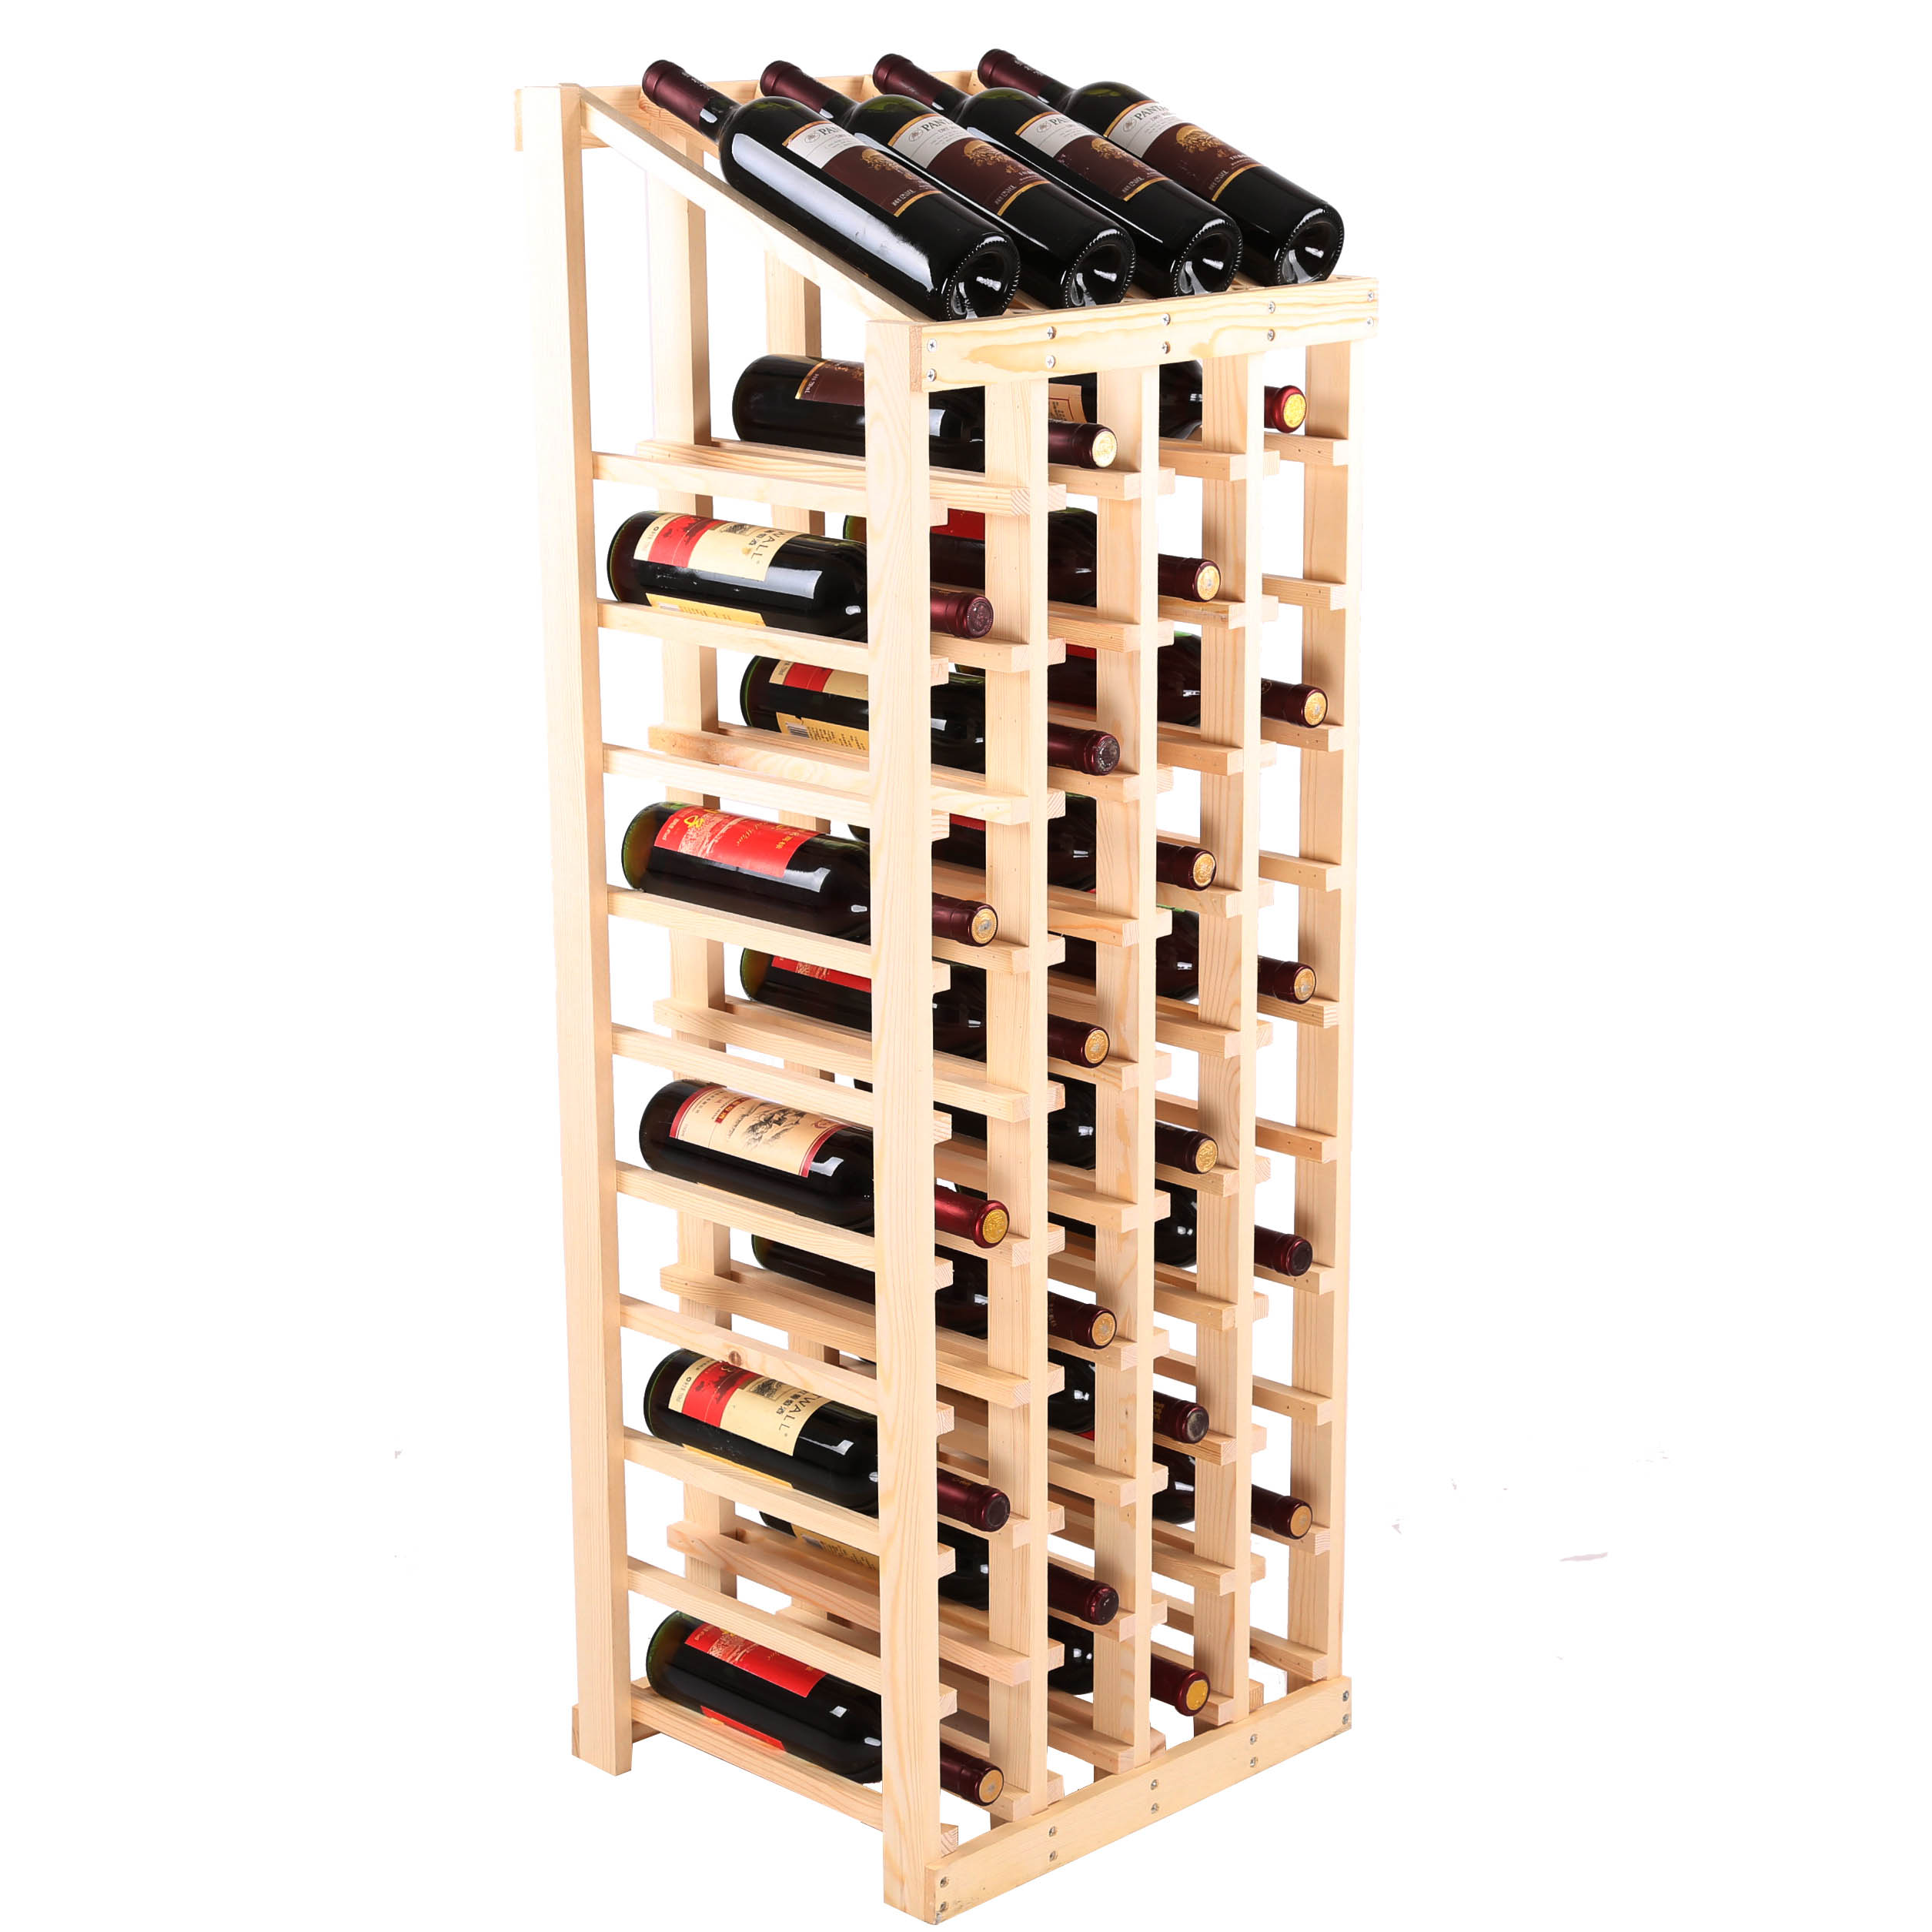 Wooden Bottle Rack Red Wine Rack Full Solid Wood Display Stand Wooden Wine Bottle Rack